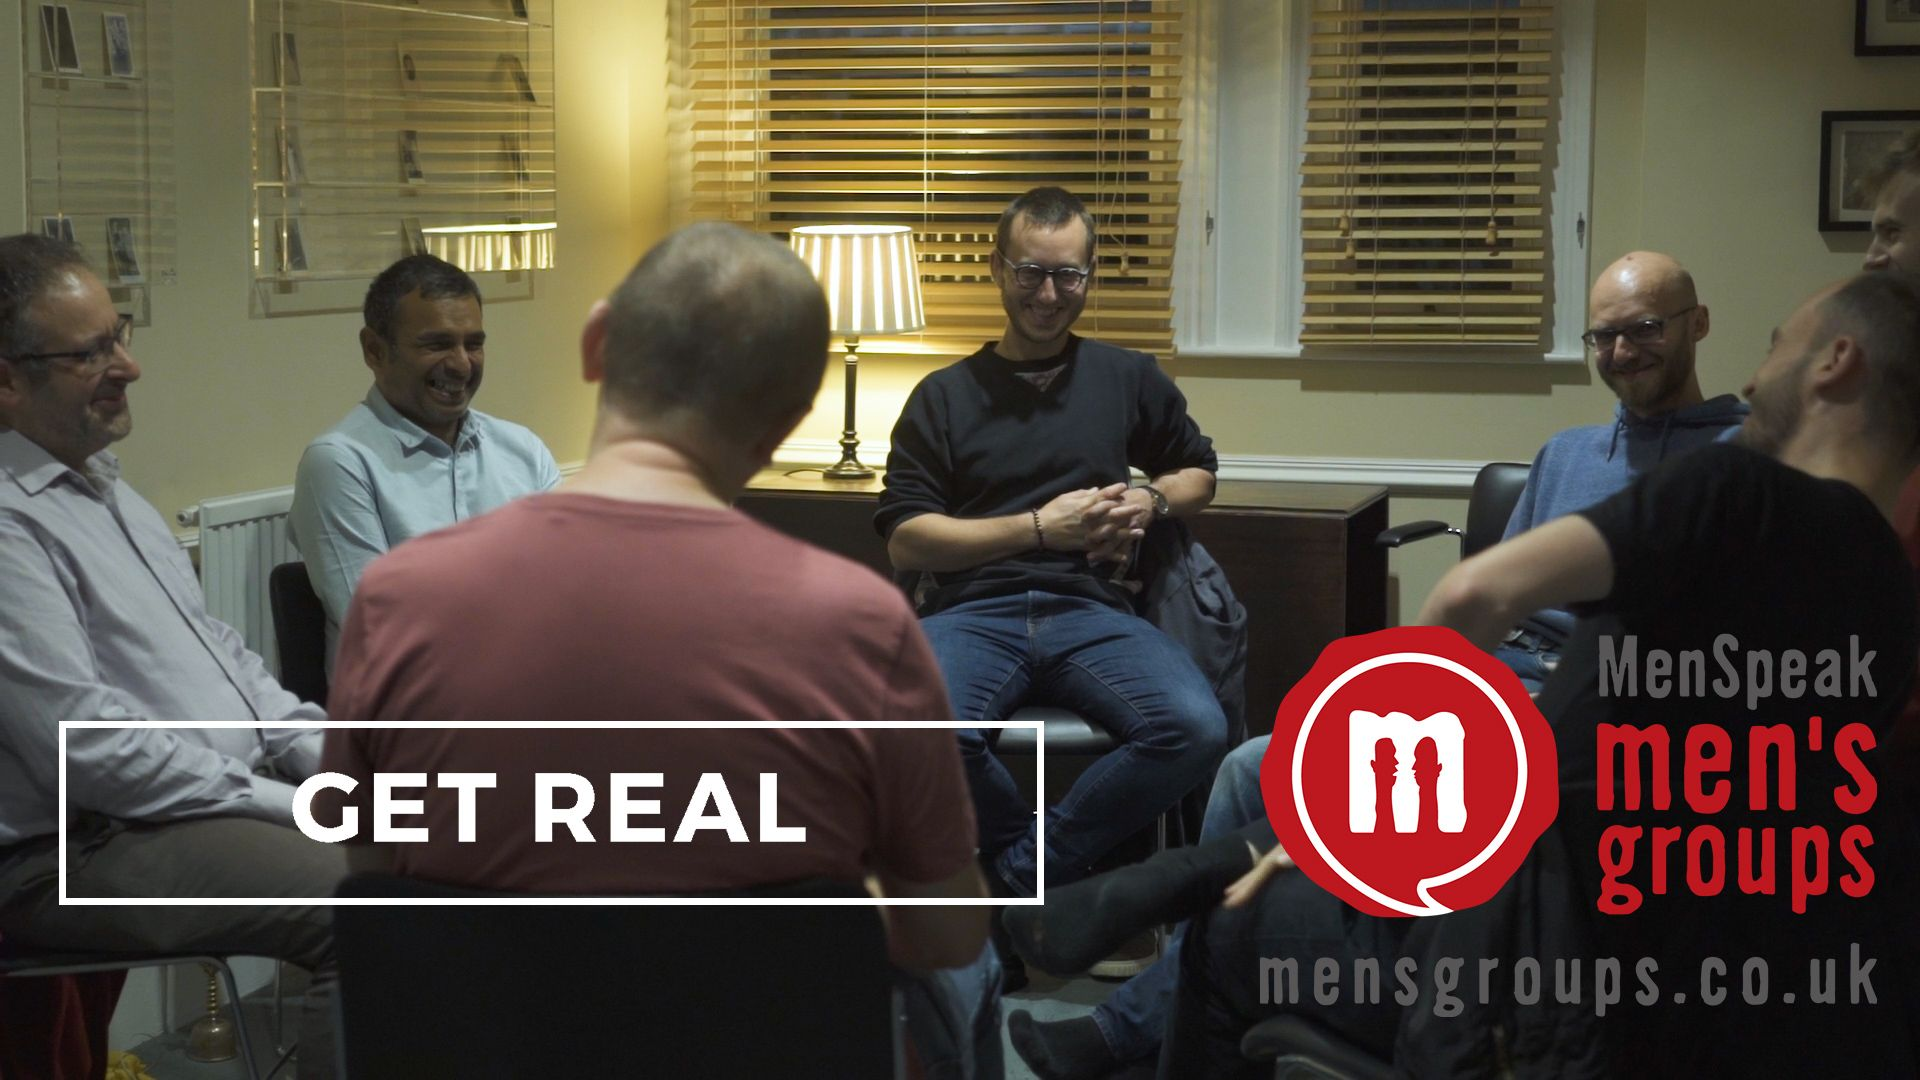 MenSpeak Men's Groups (London / Online)